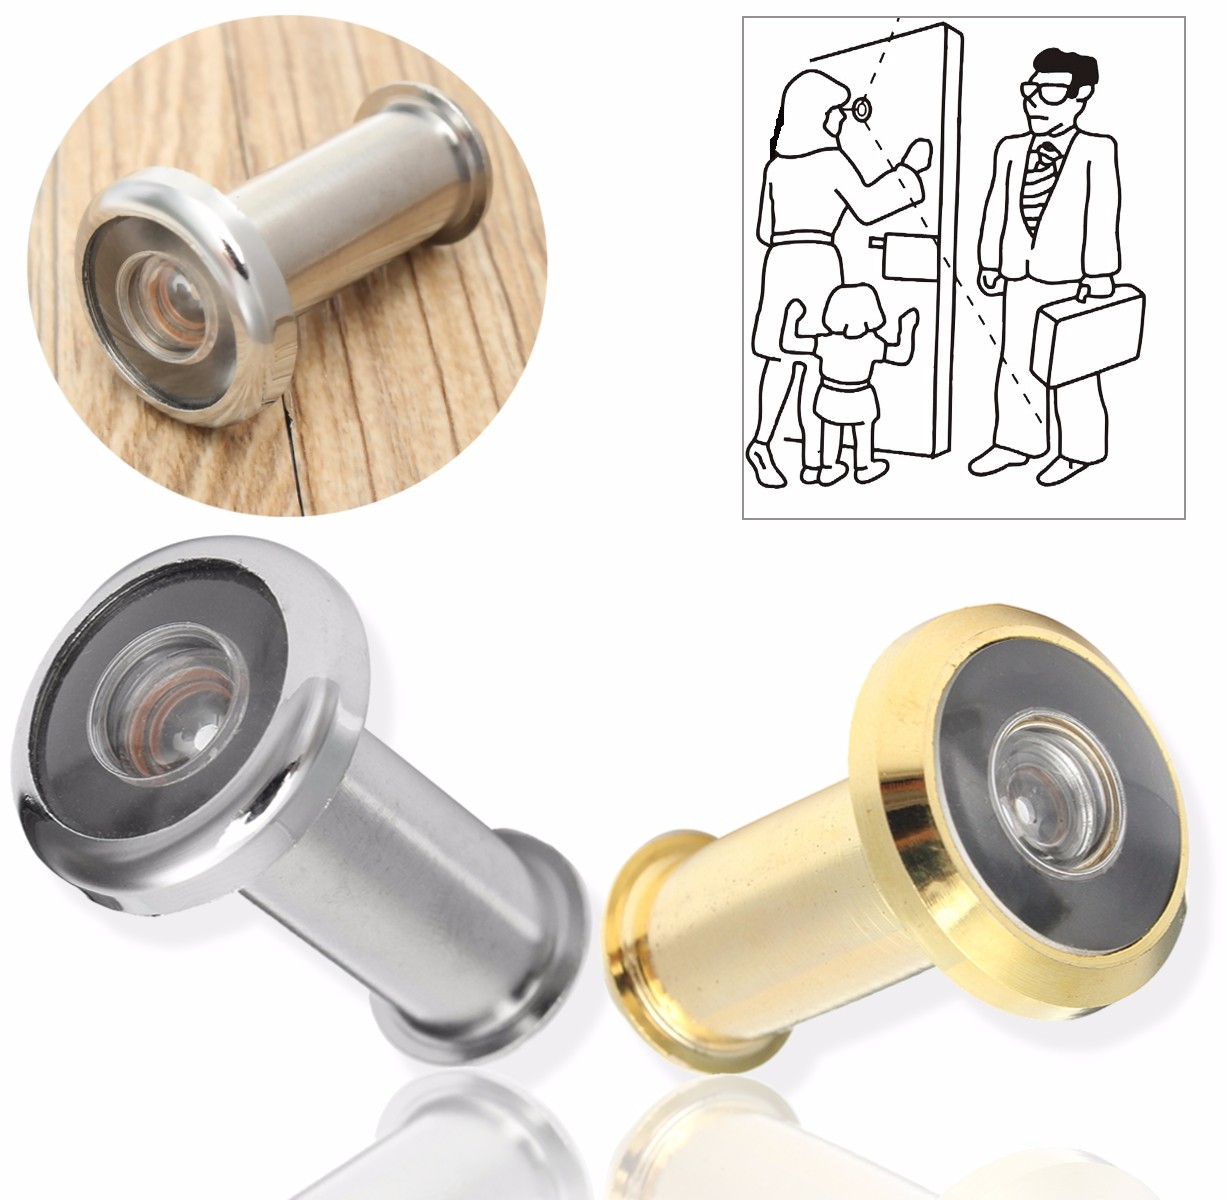 Adjustable Home Security 180 Degree Wide Angle Door Viewer Peep Brass Sight Hole